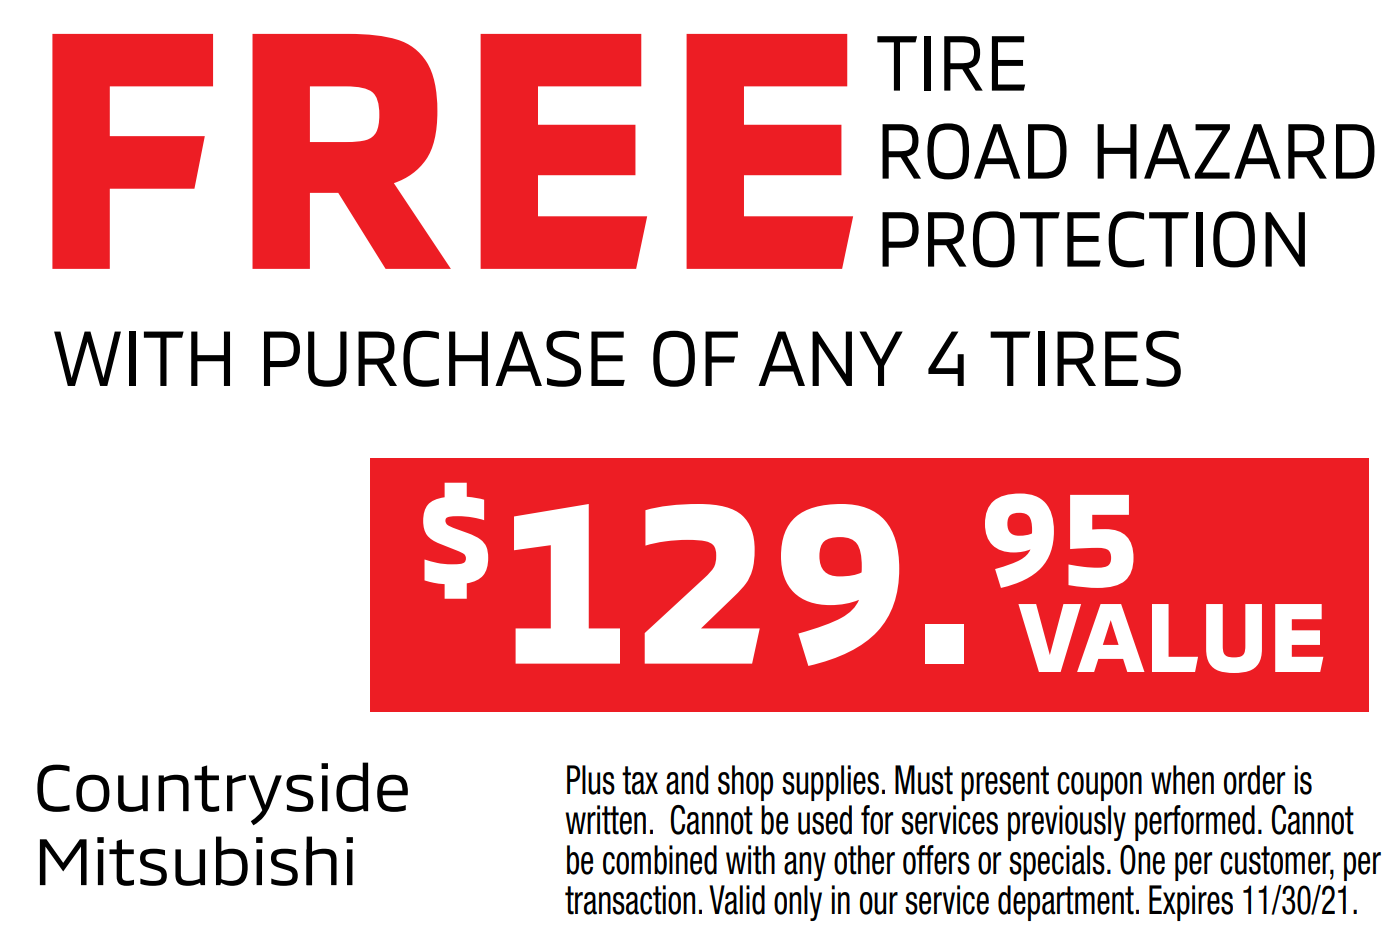 Free tire road hazard protection ($129 value) with purchase of any 4 tires